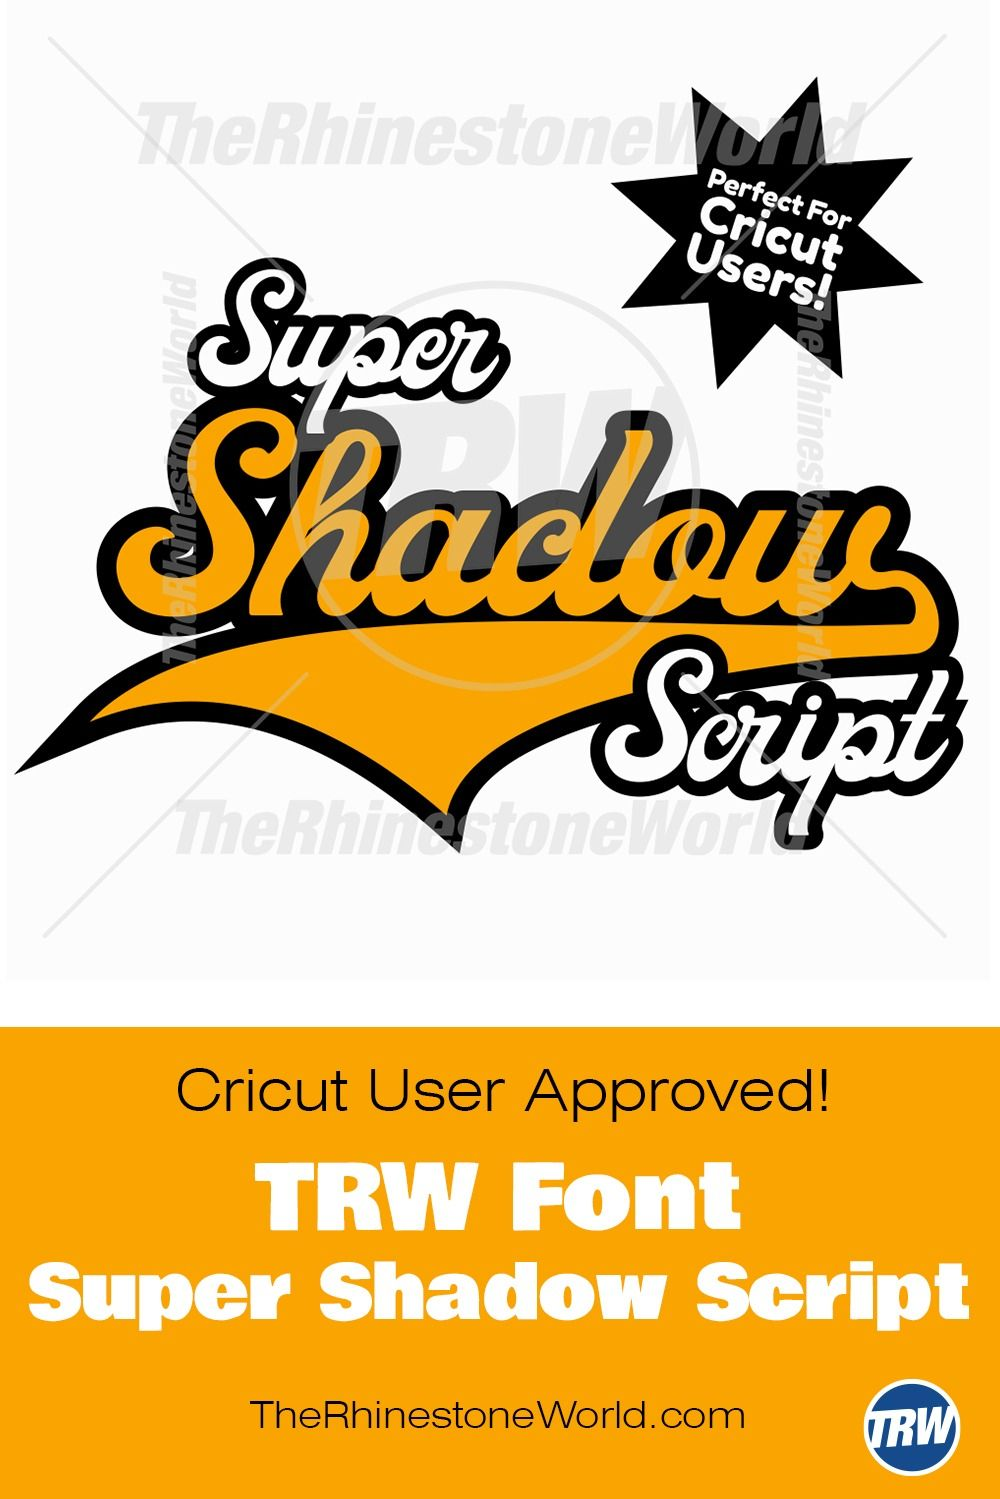 35+ Cricut fonts with shadows ideas in 2021